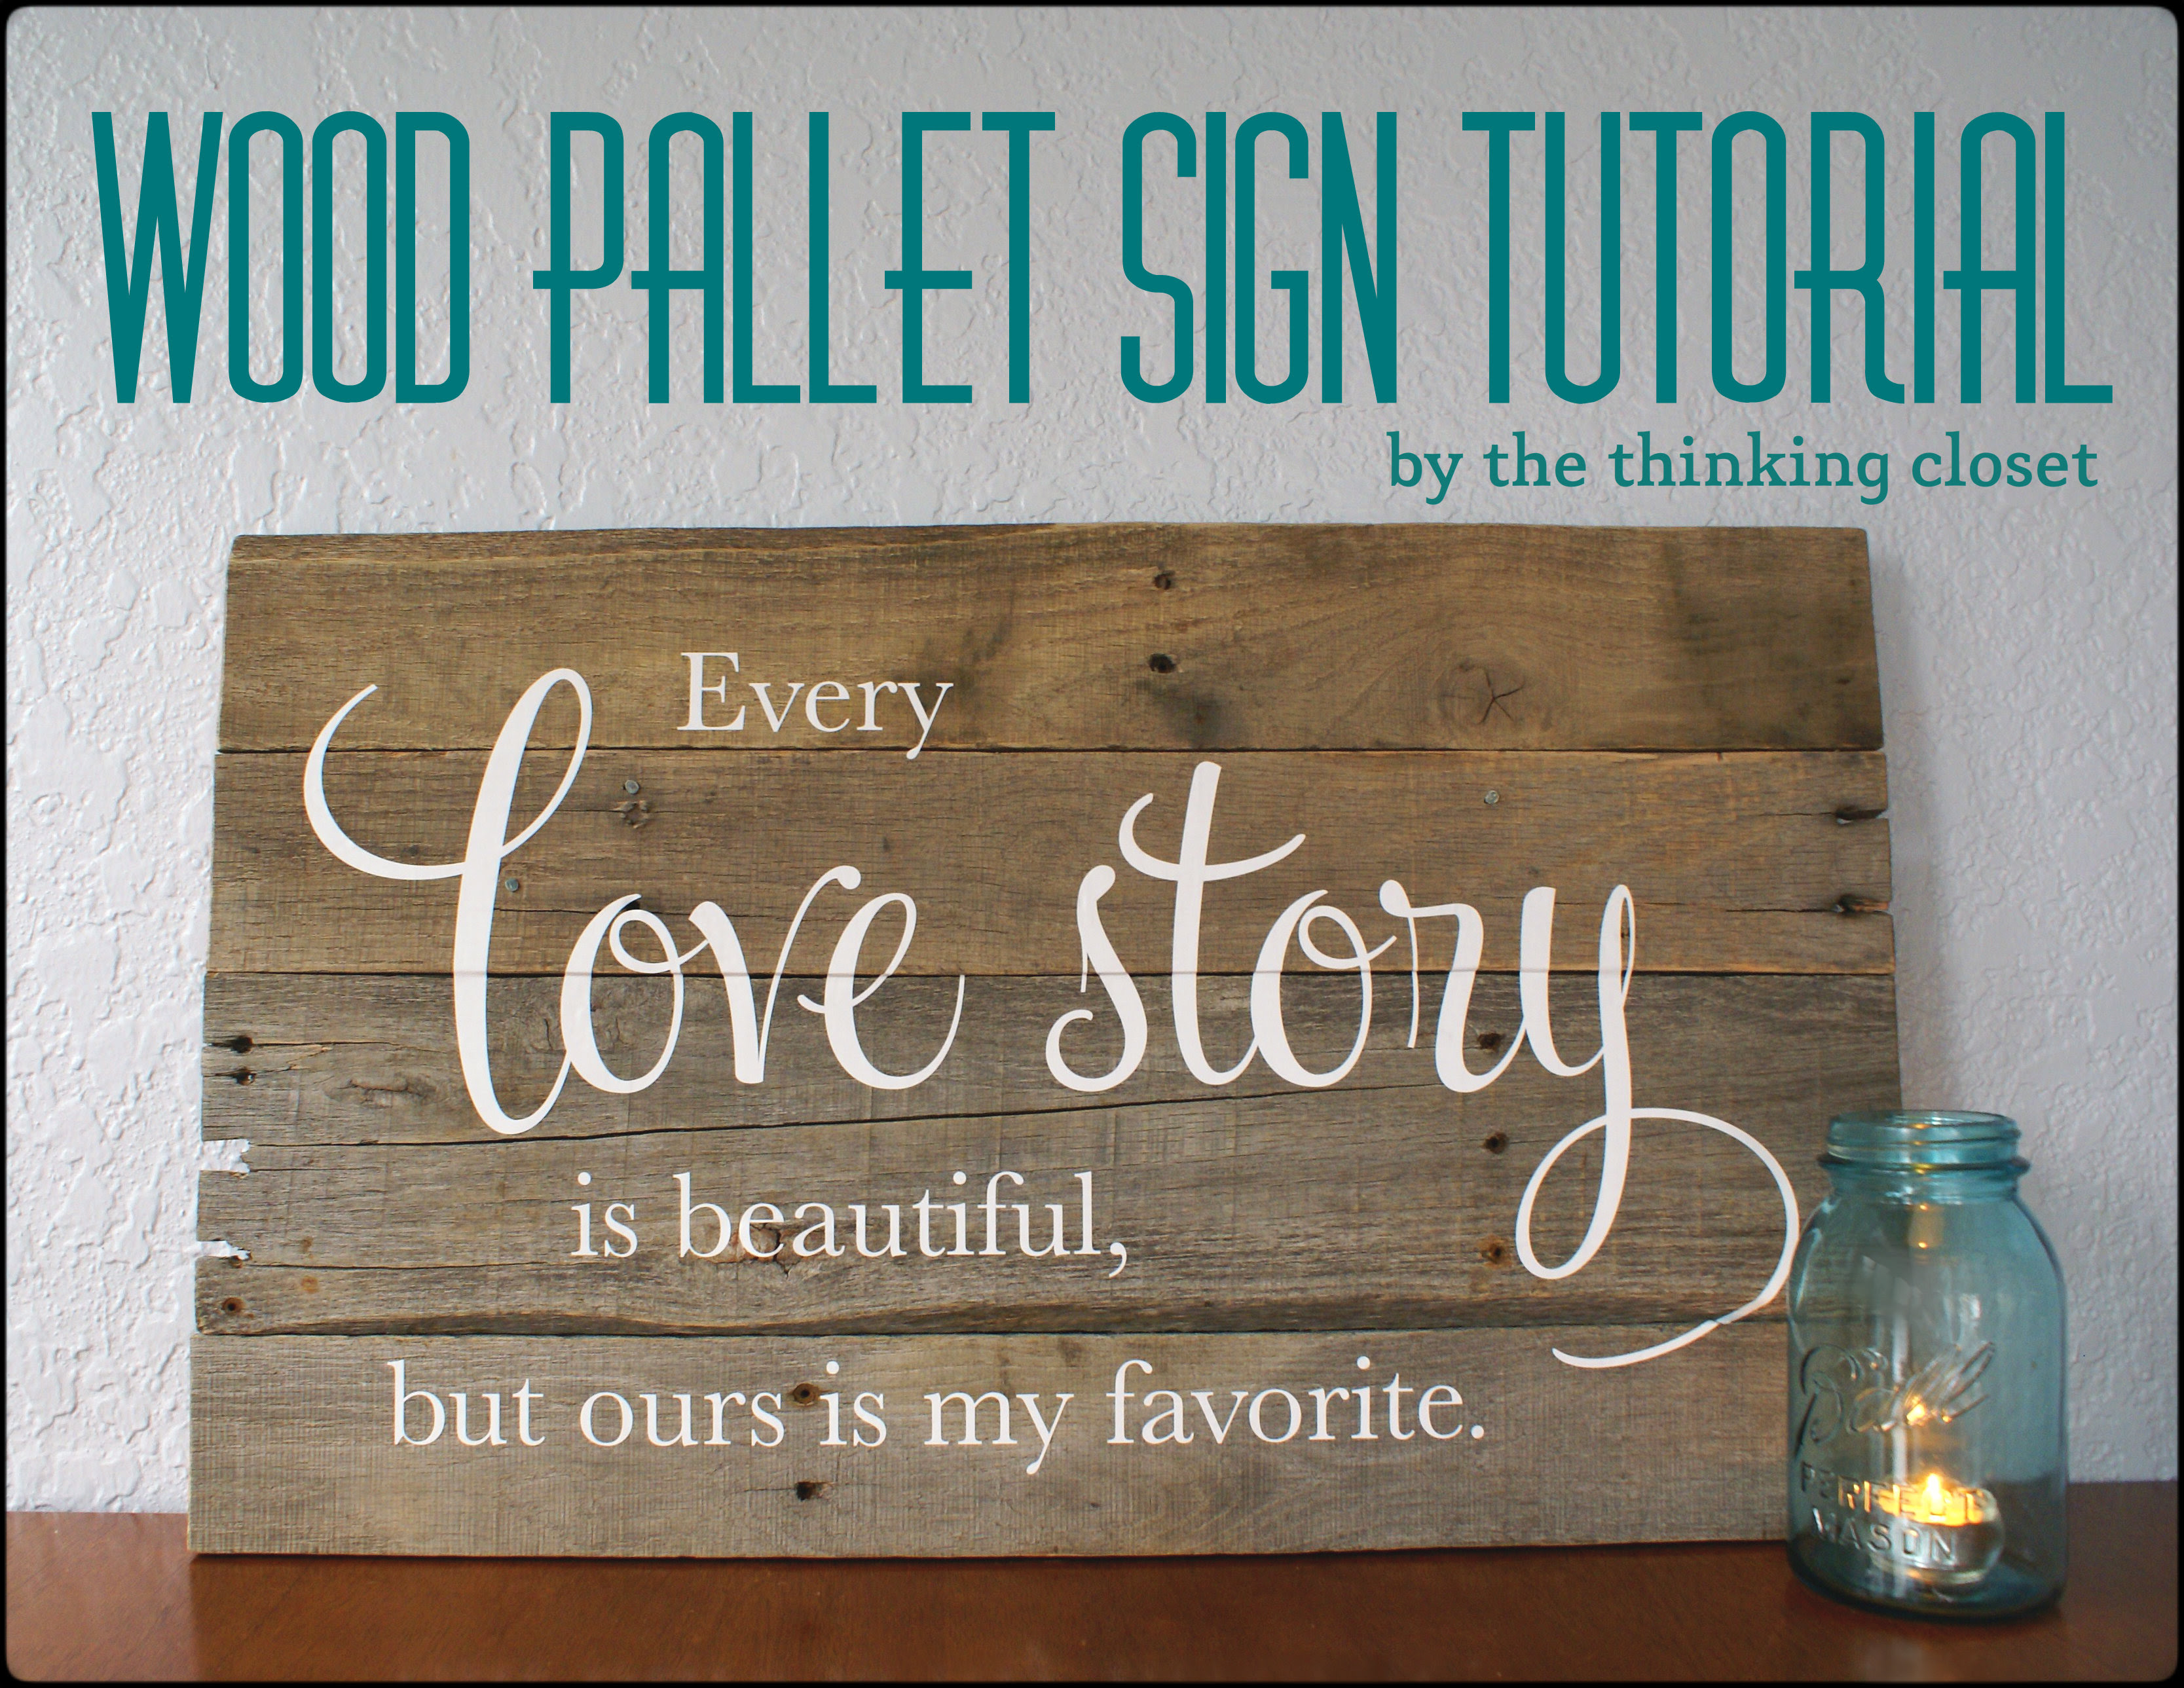 giving for her a like pinterest  birthday. was your wooden rustic baseball signs Mom mitt It